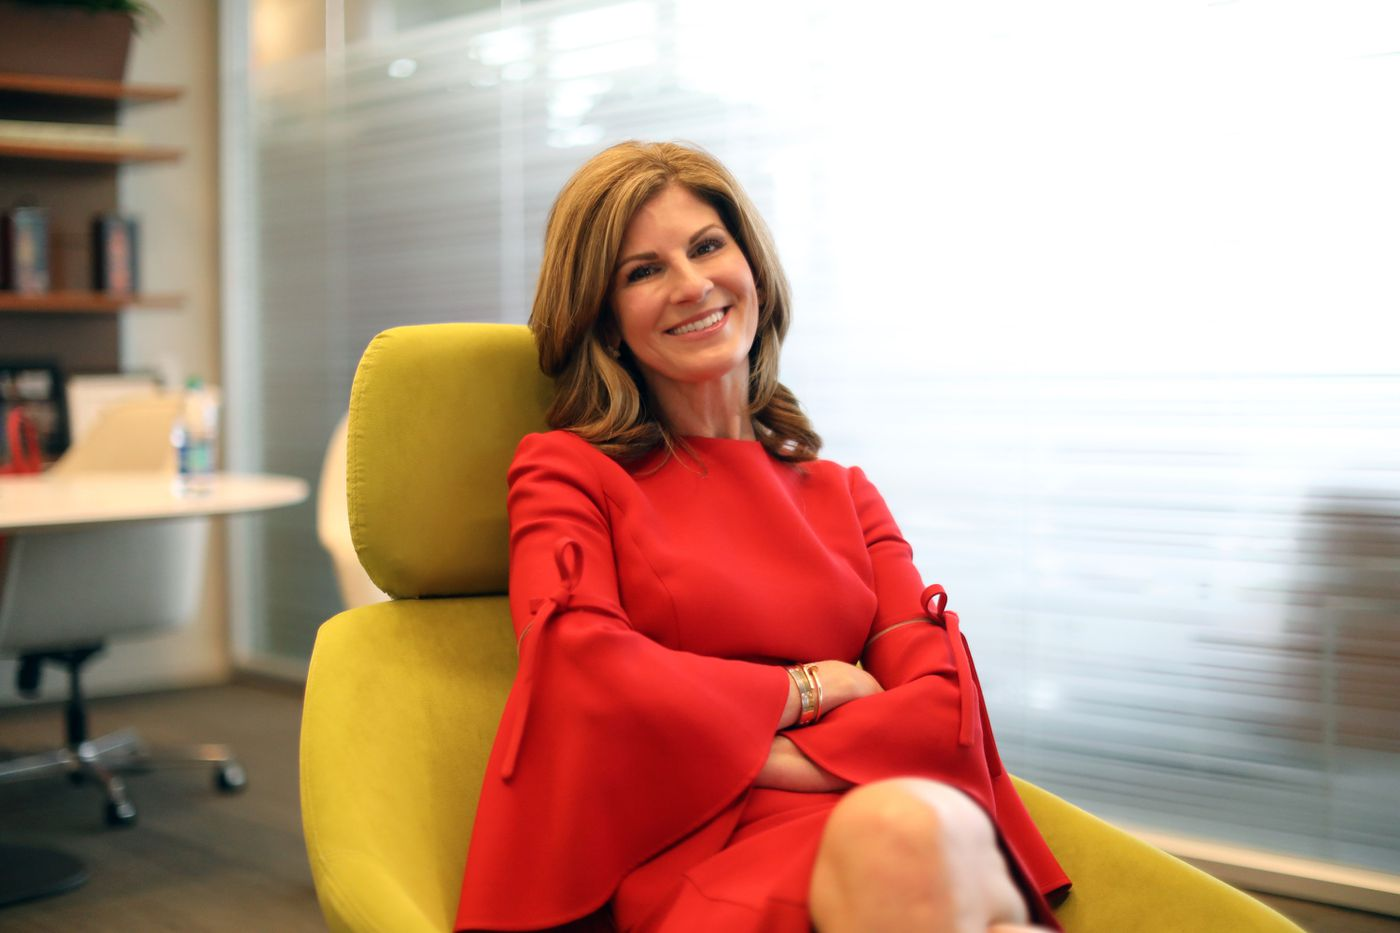 SAP's president Jennifer Morgan, named one of the most powerful women in business this year by Fortune, prepares for a fireside chat with Jill Biden in front of her employees in November.